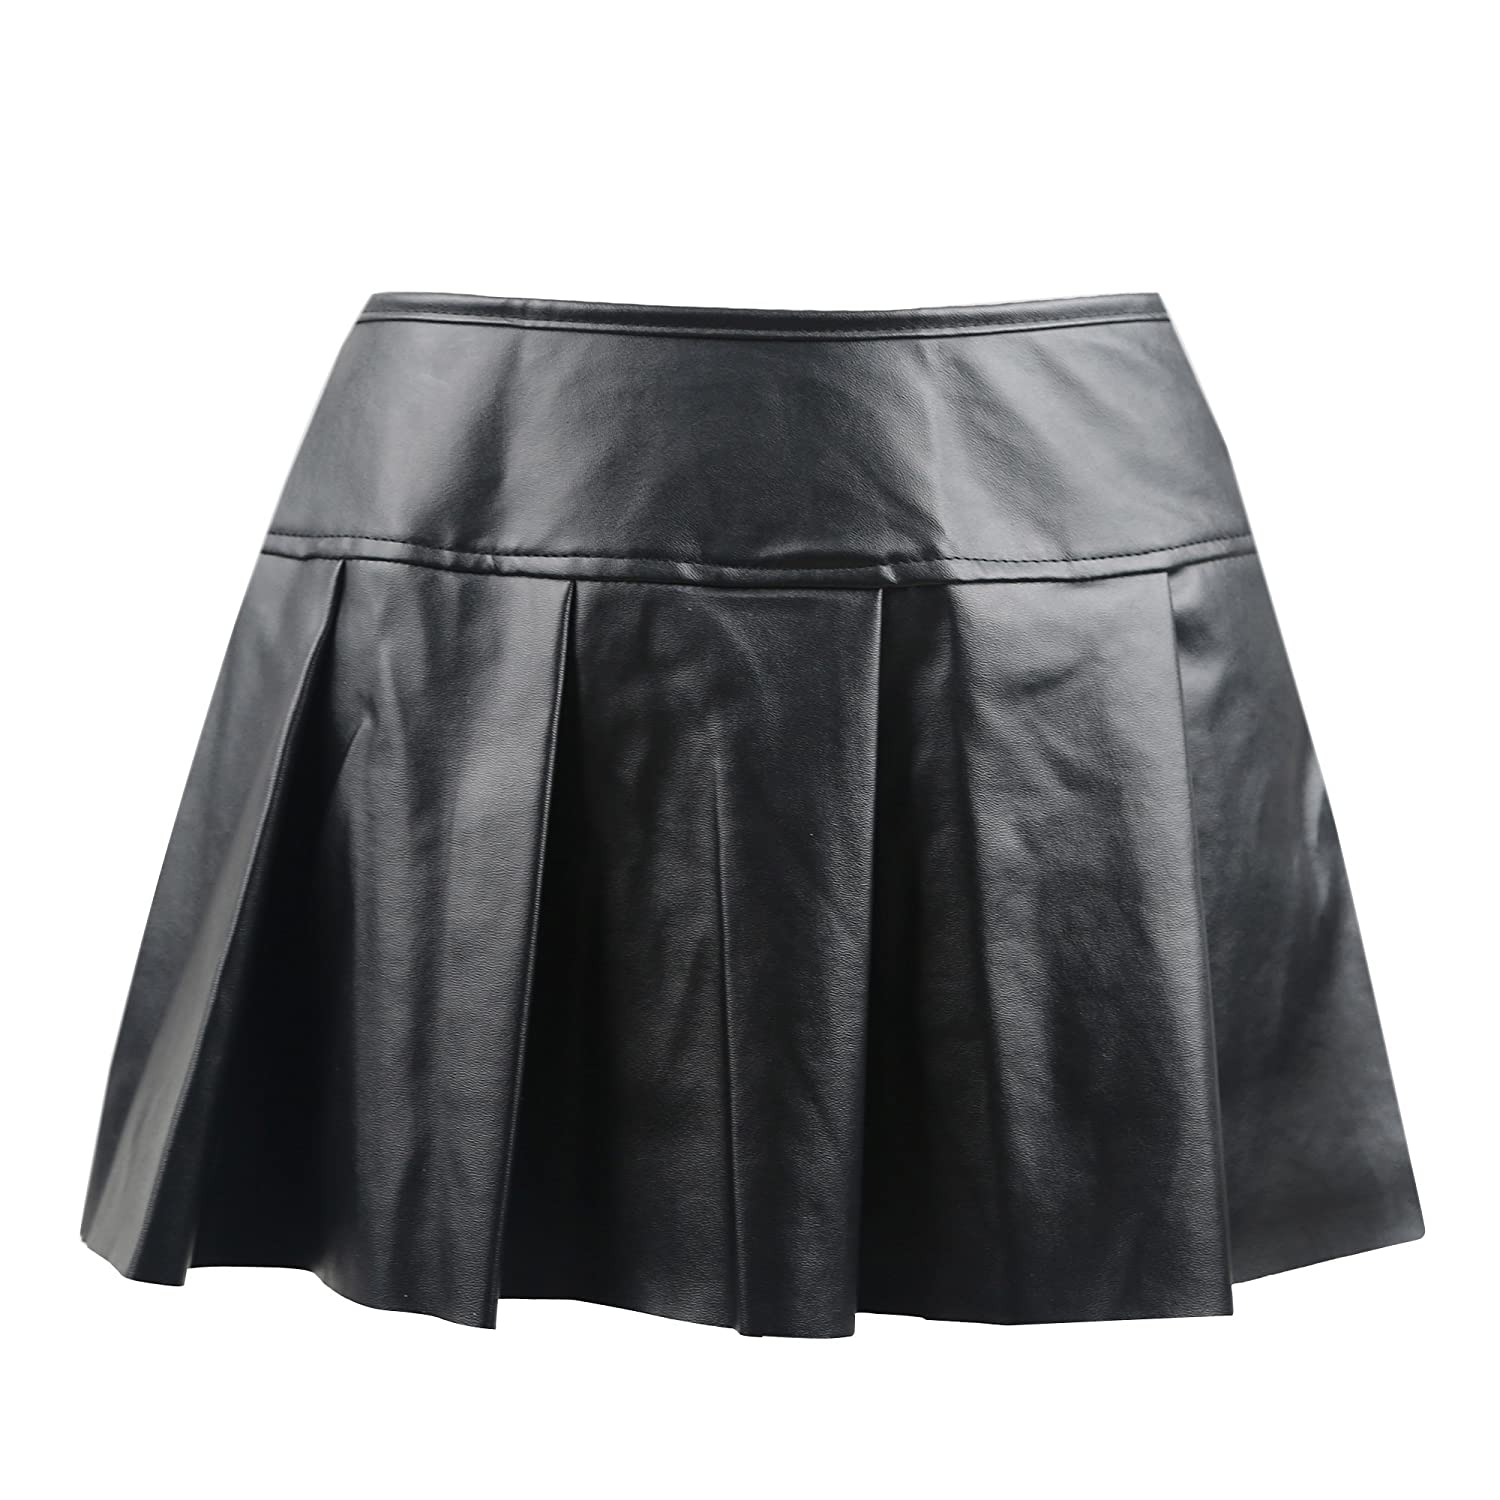 Killreal Women's Punk Rock Faux Leather Bodycon Short Skirt Zp Fashion ZP0009443